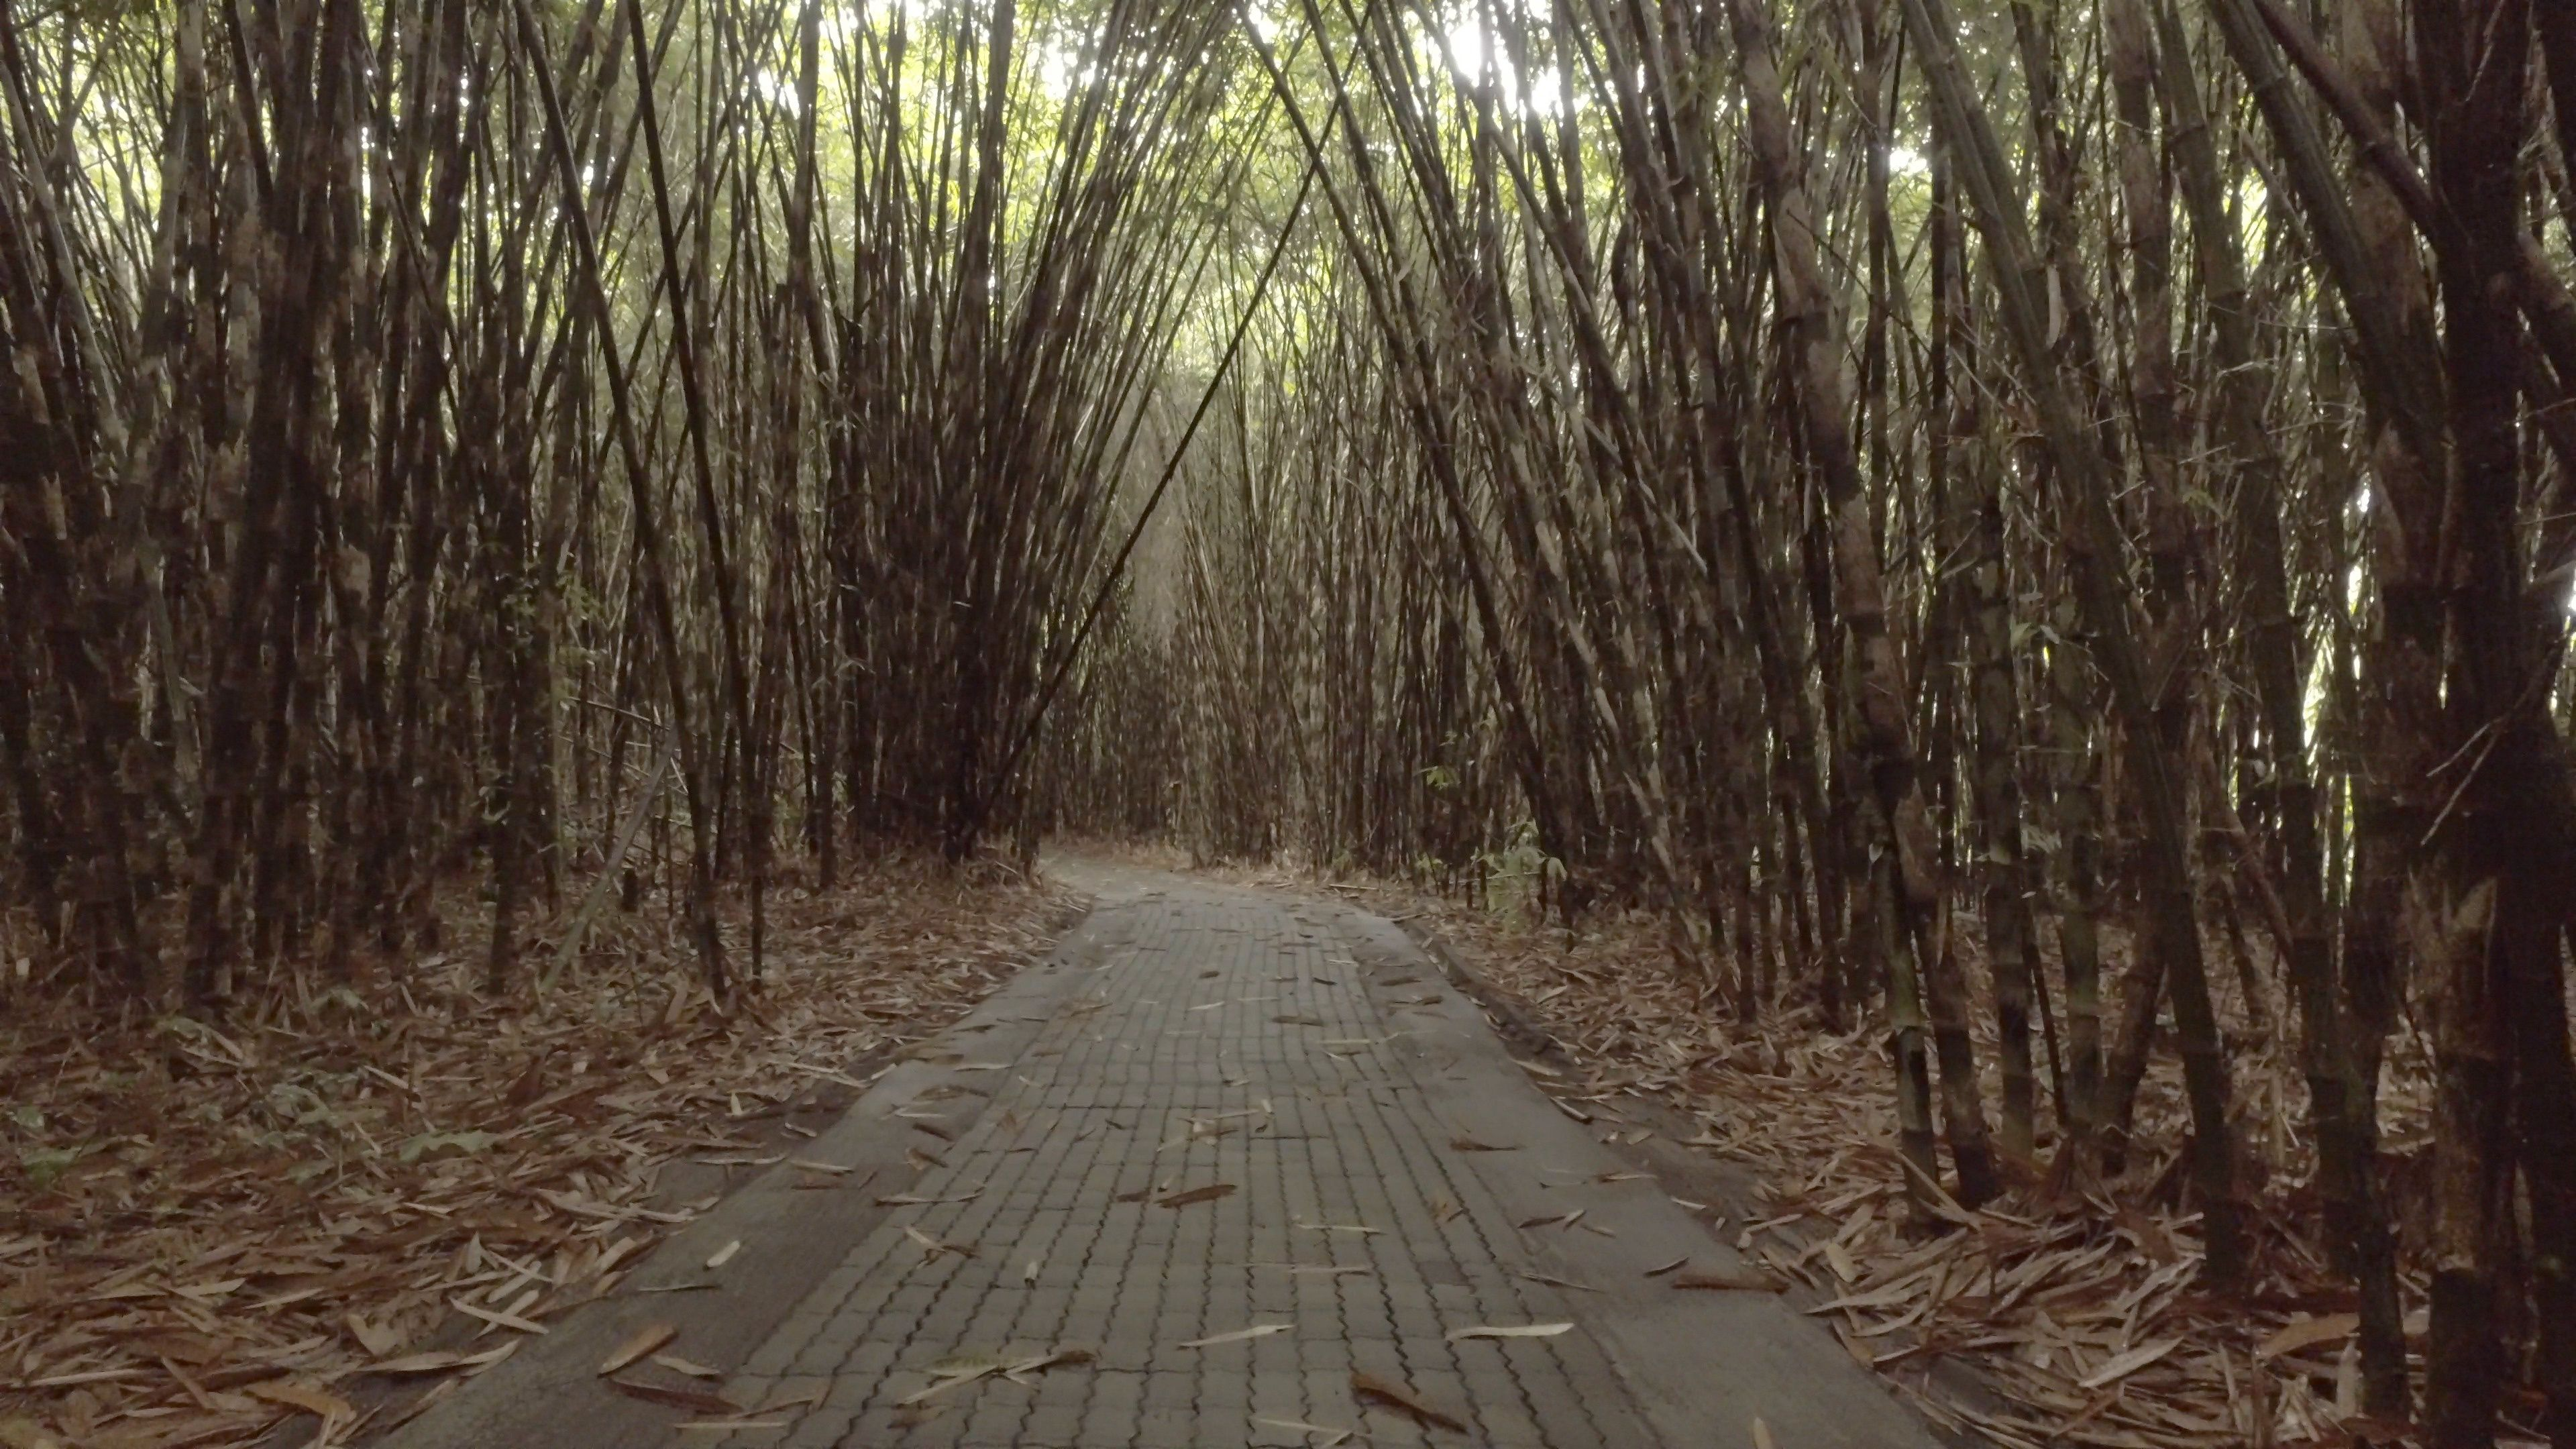 Bamboo Forest In Bali Indonesia Shot In 4k Resolution No People Only Nature Stock Footage Ad Indonesia Shot Bali Bamboo Bamboo Forest Green Scenery Bali